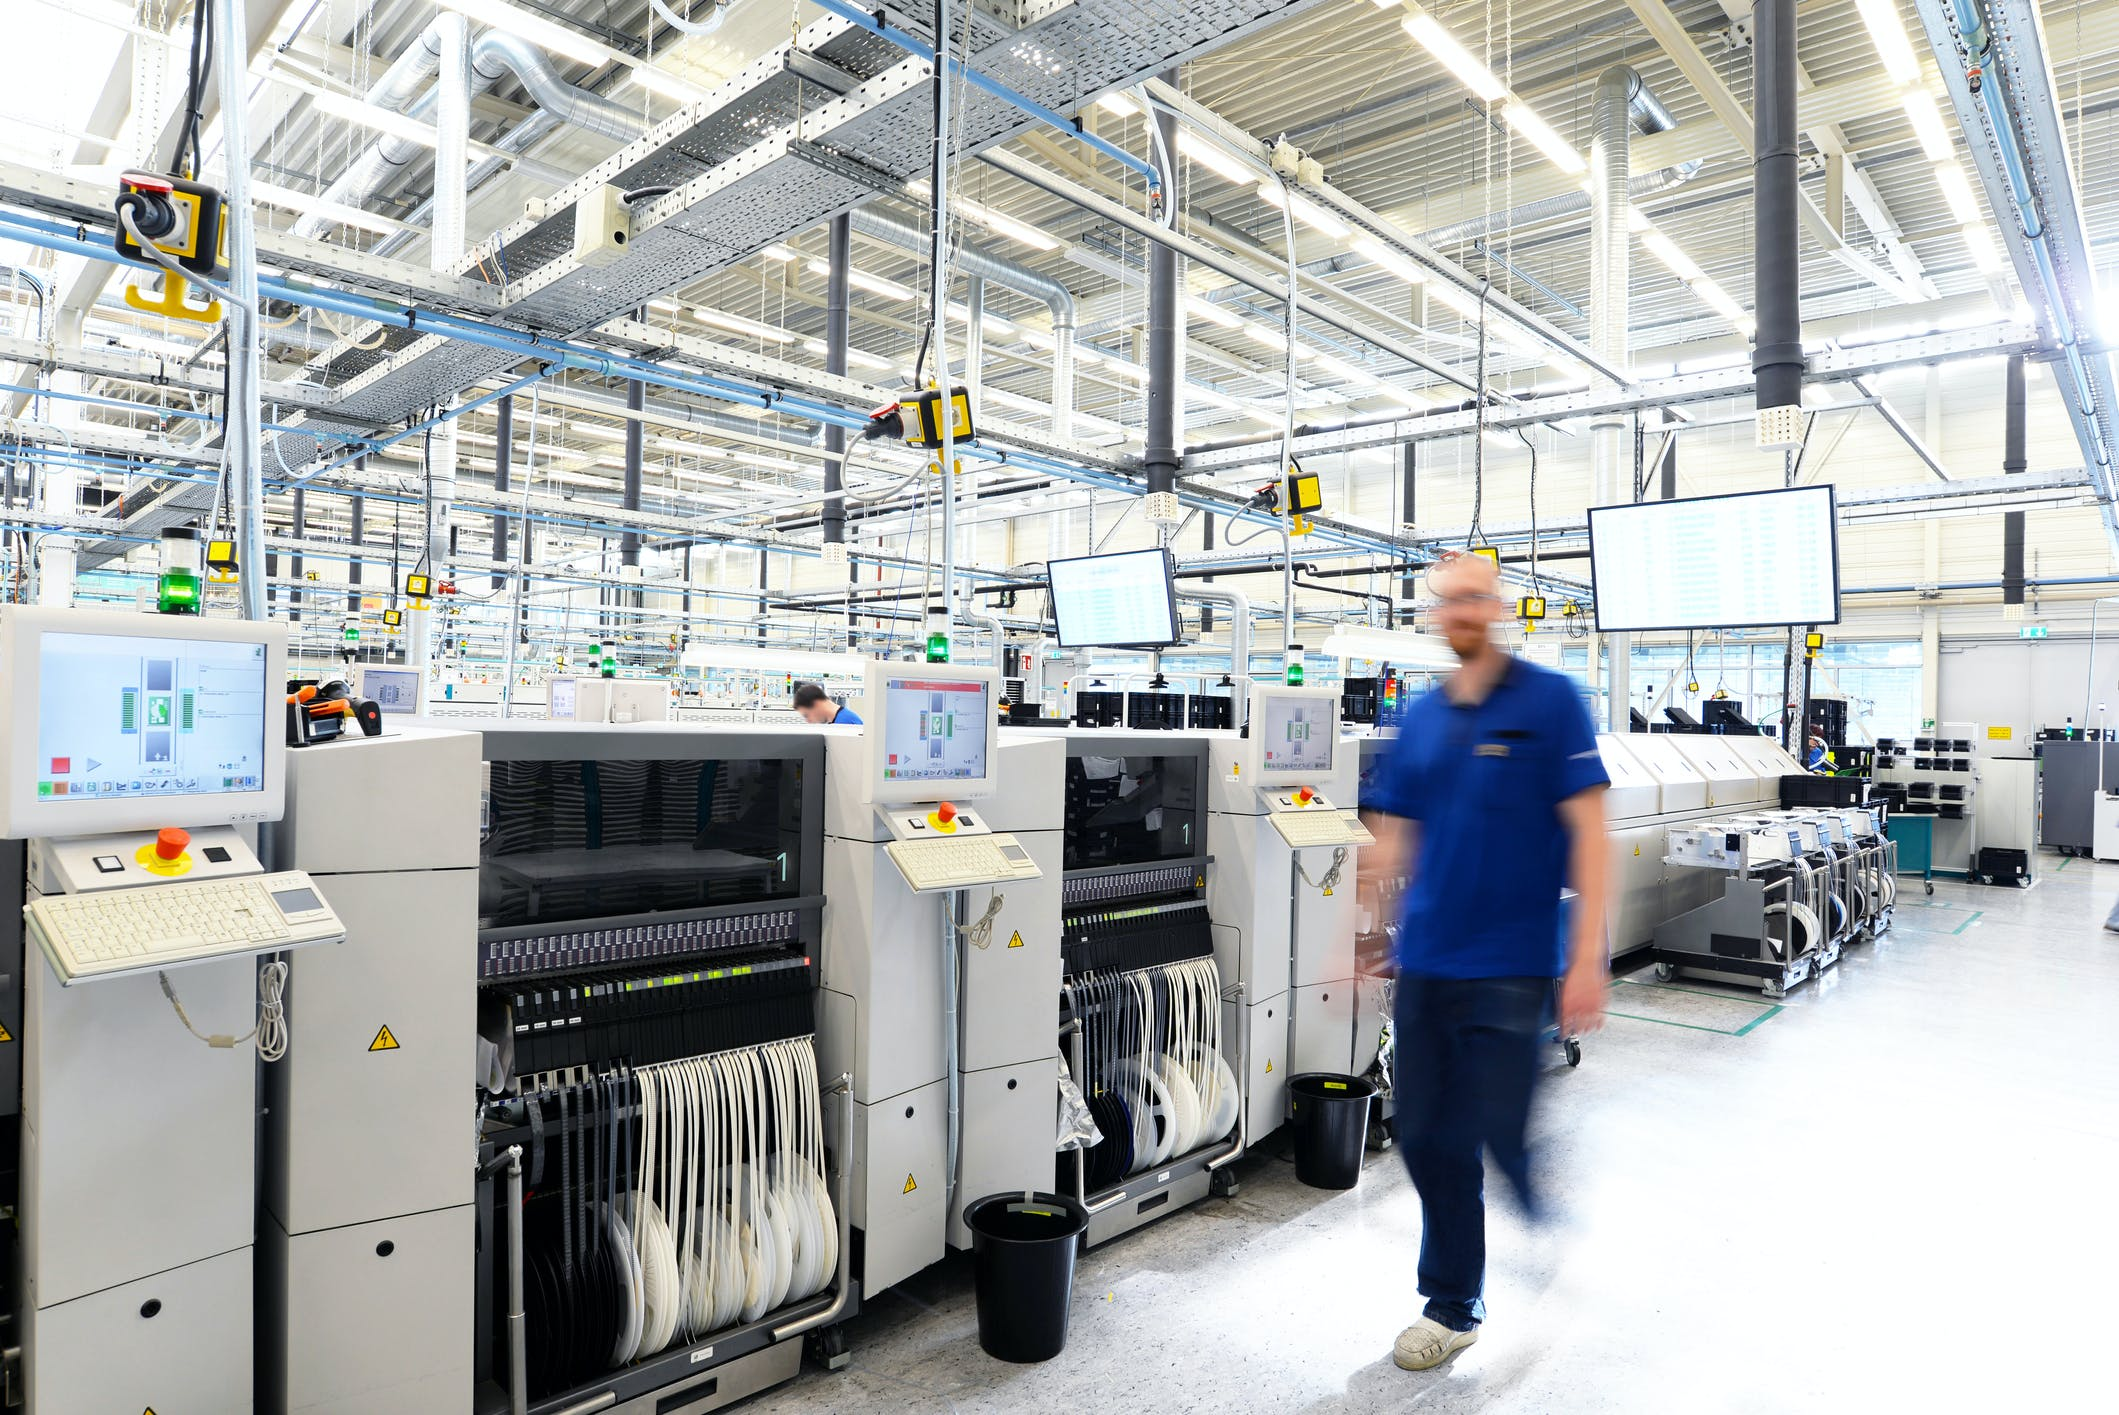 An employee walks through a workshop with SMD coils.